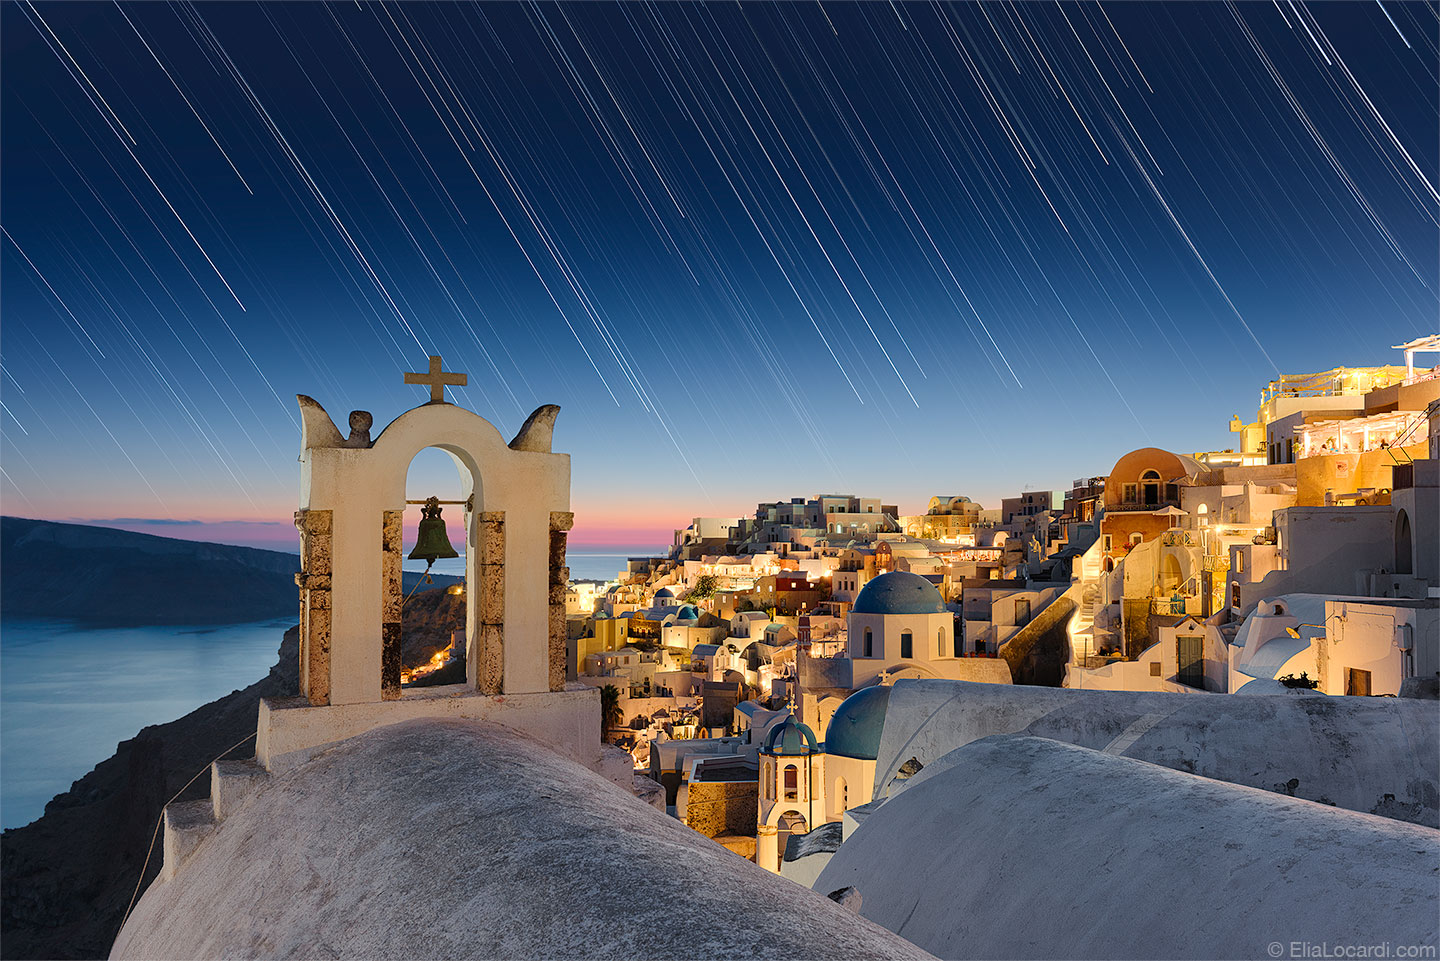 As the stars dance above the enchanting town of Oia Santorini, the island paradise of the Aegean Sea.